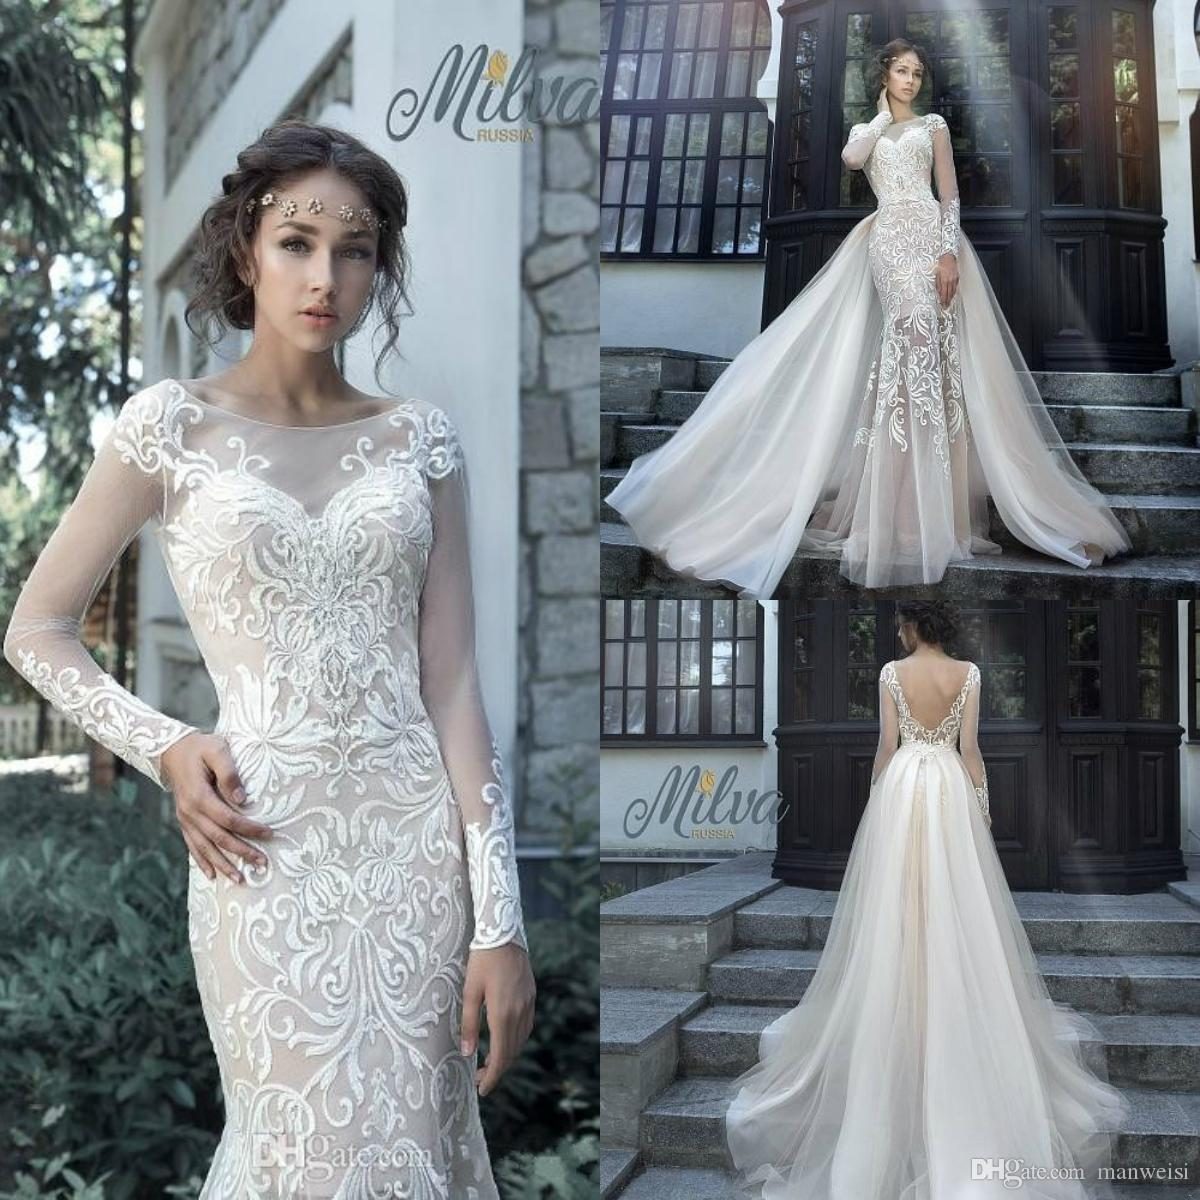 a16aba72e3af Milva Bridal Wedding Dresses With Detachable Train 2018 Sexy Sheer Long  Sleeves Low Back Lace Mermaid Bridal Gowns Maternity Wedding Dresses  Mermaid Dresses ...